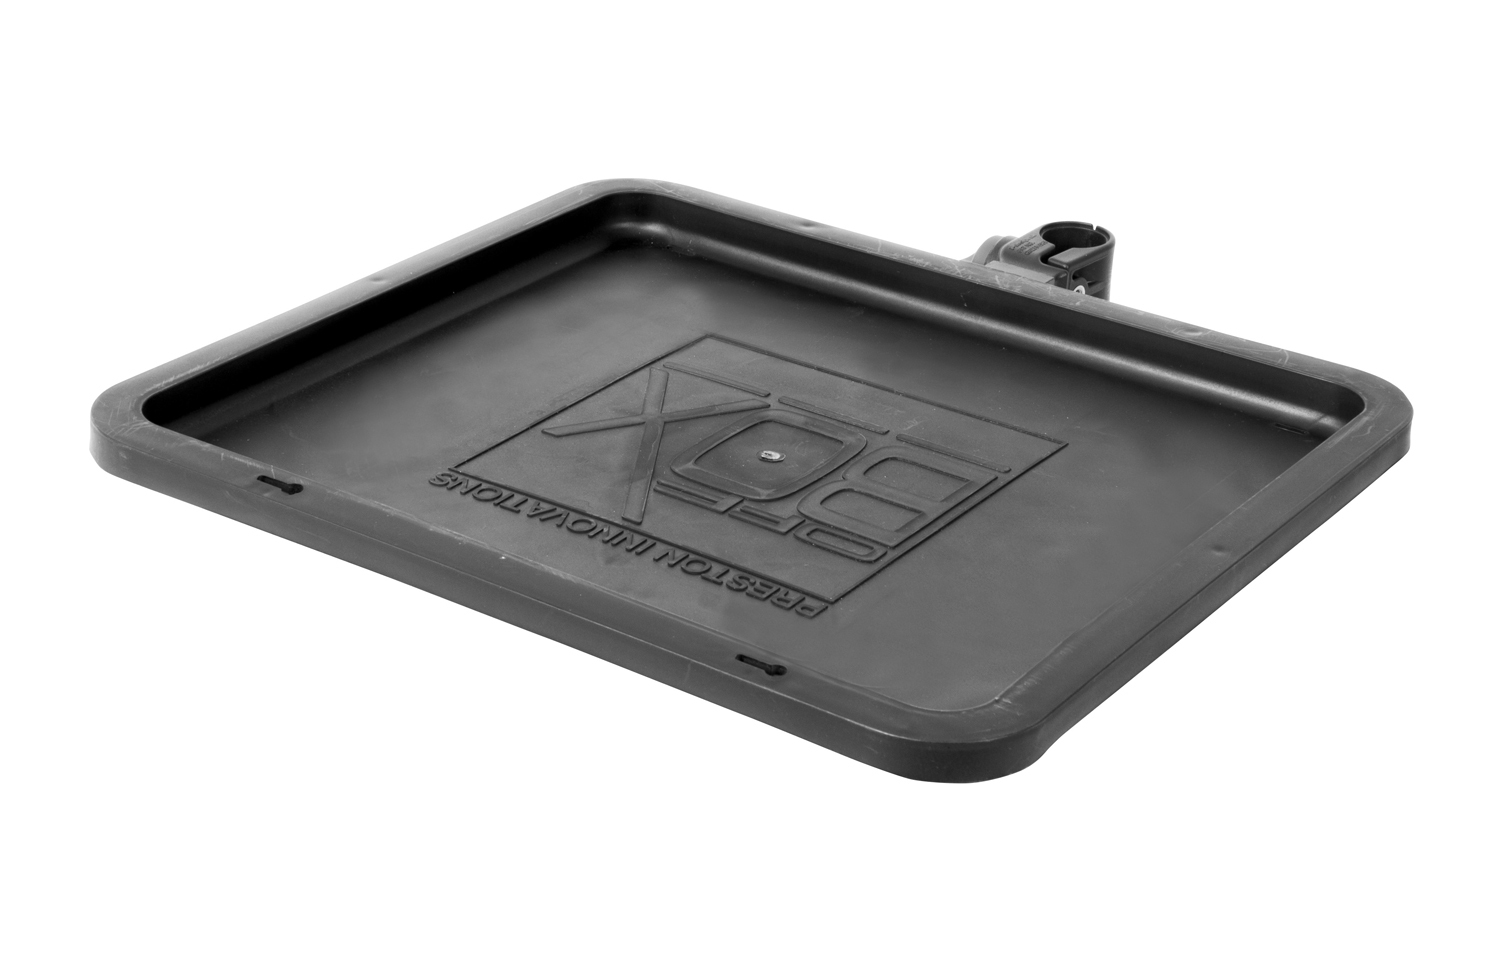 Preston Offbox 36 Super Side Tray (Tisch/Tablett)